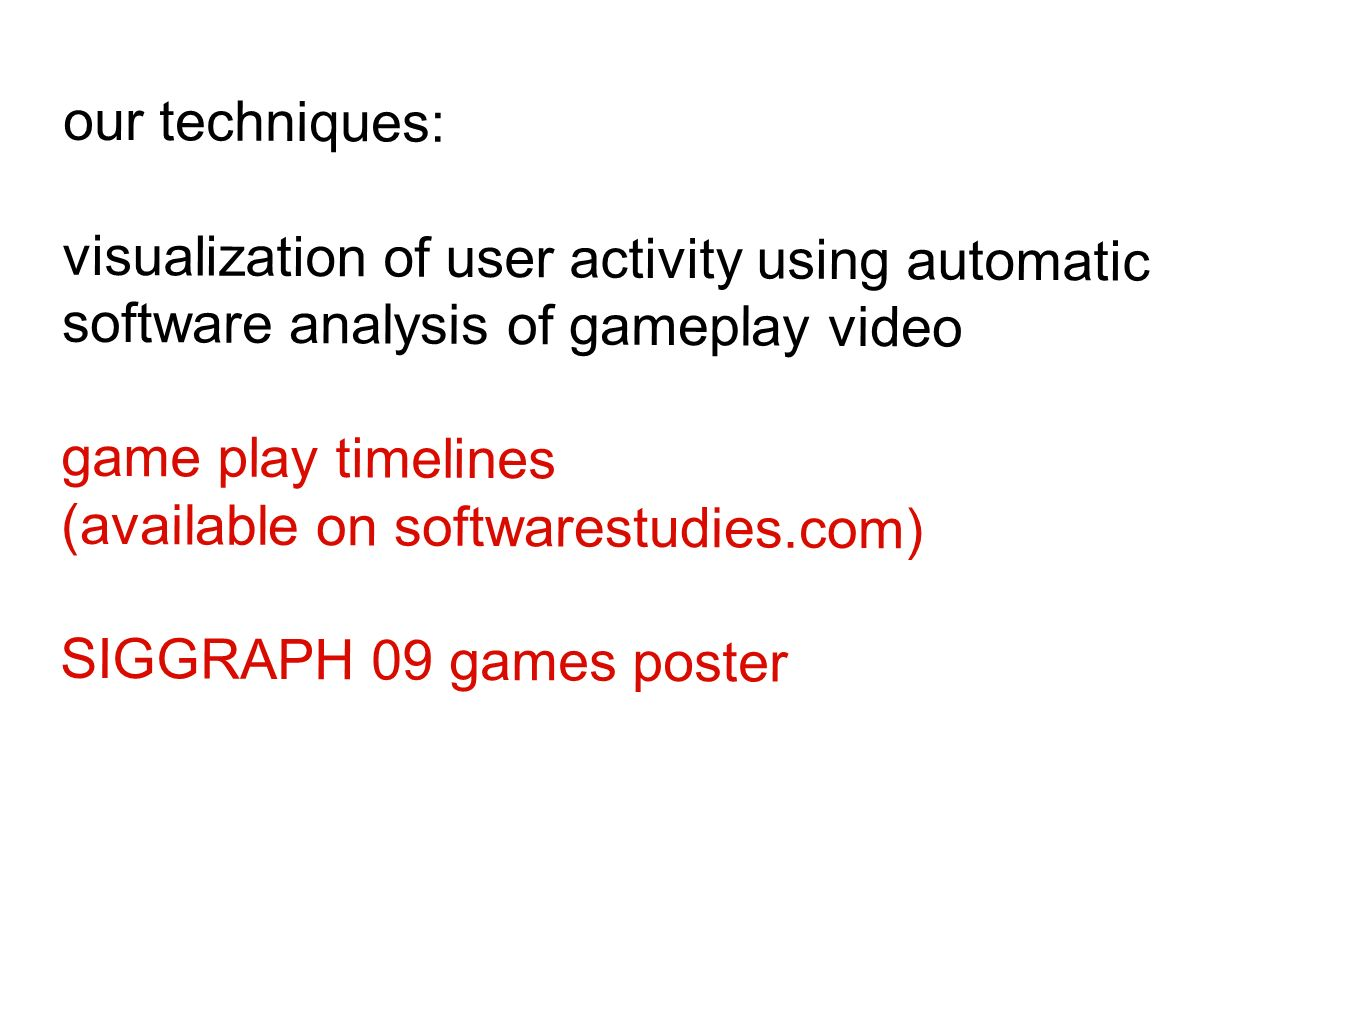 our techniques: visualization of user activity using automatic software analysis of gameplay video game play timelines (available on softwarestudies.com) SIGGRAPH 09 games poster